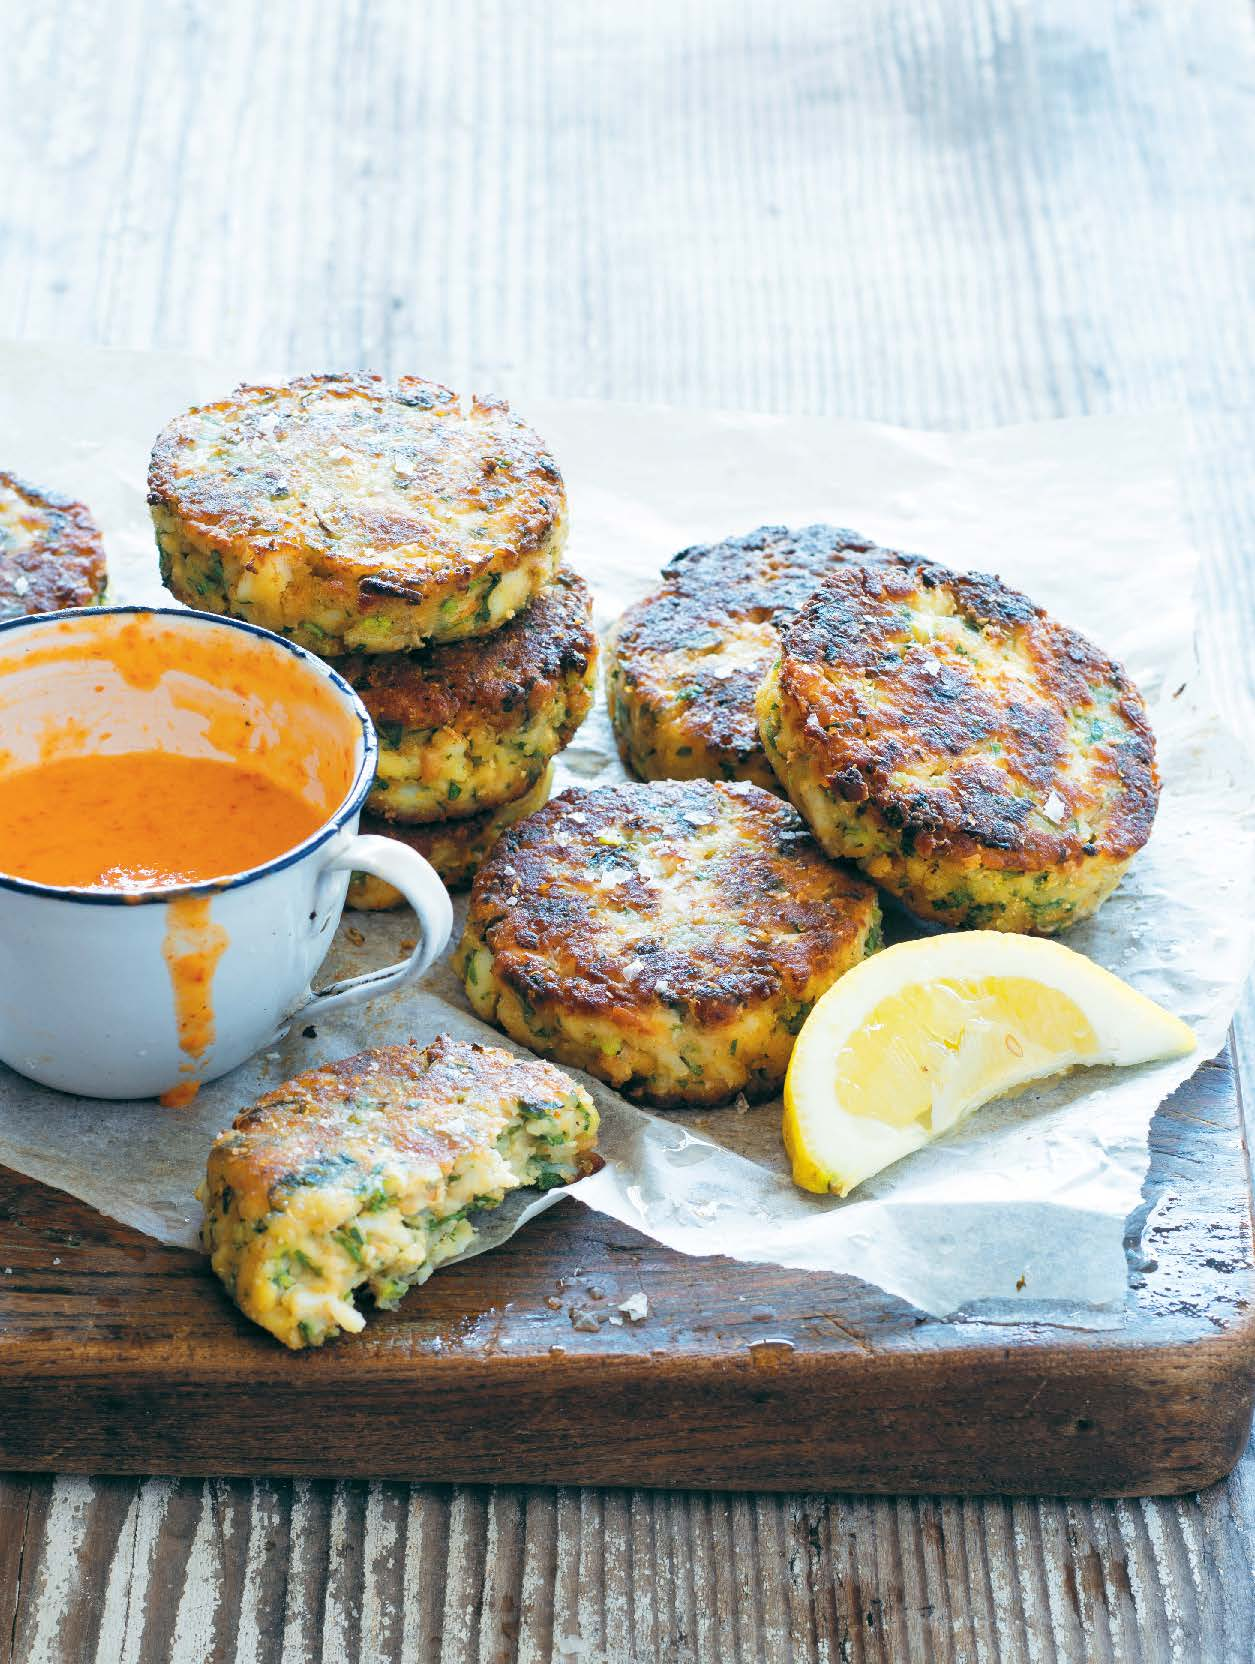 Crab cakes with red mayonnaise